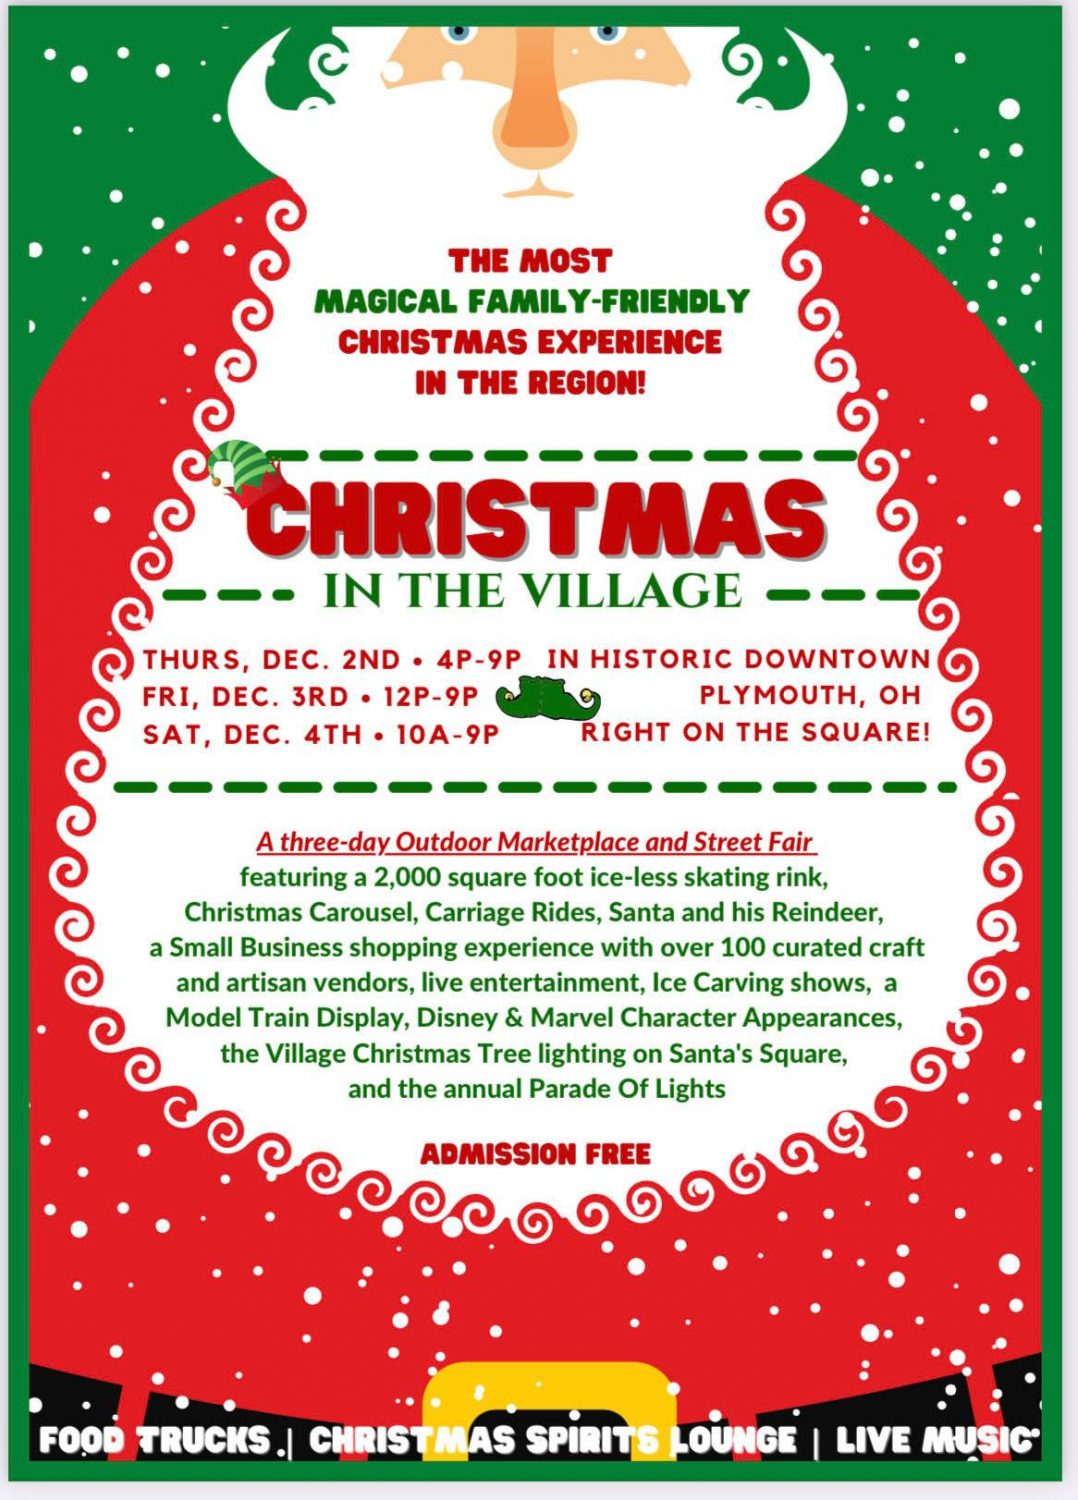 6th Annual Christmas in the Village